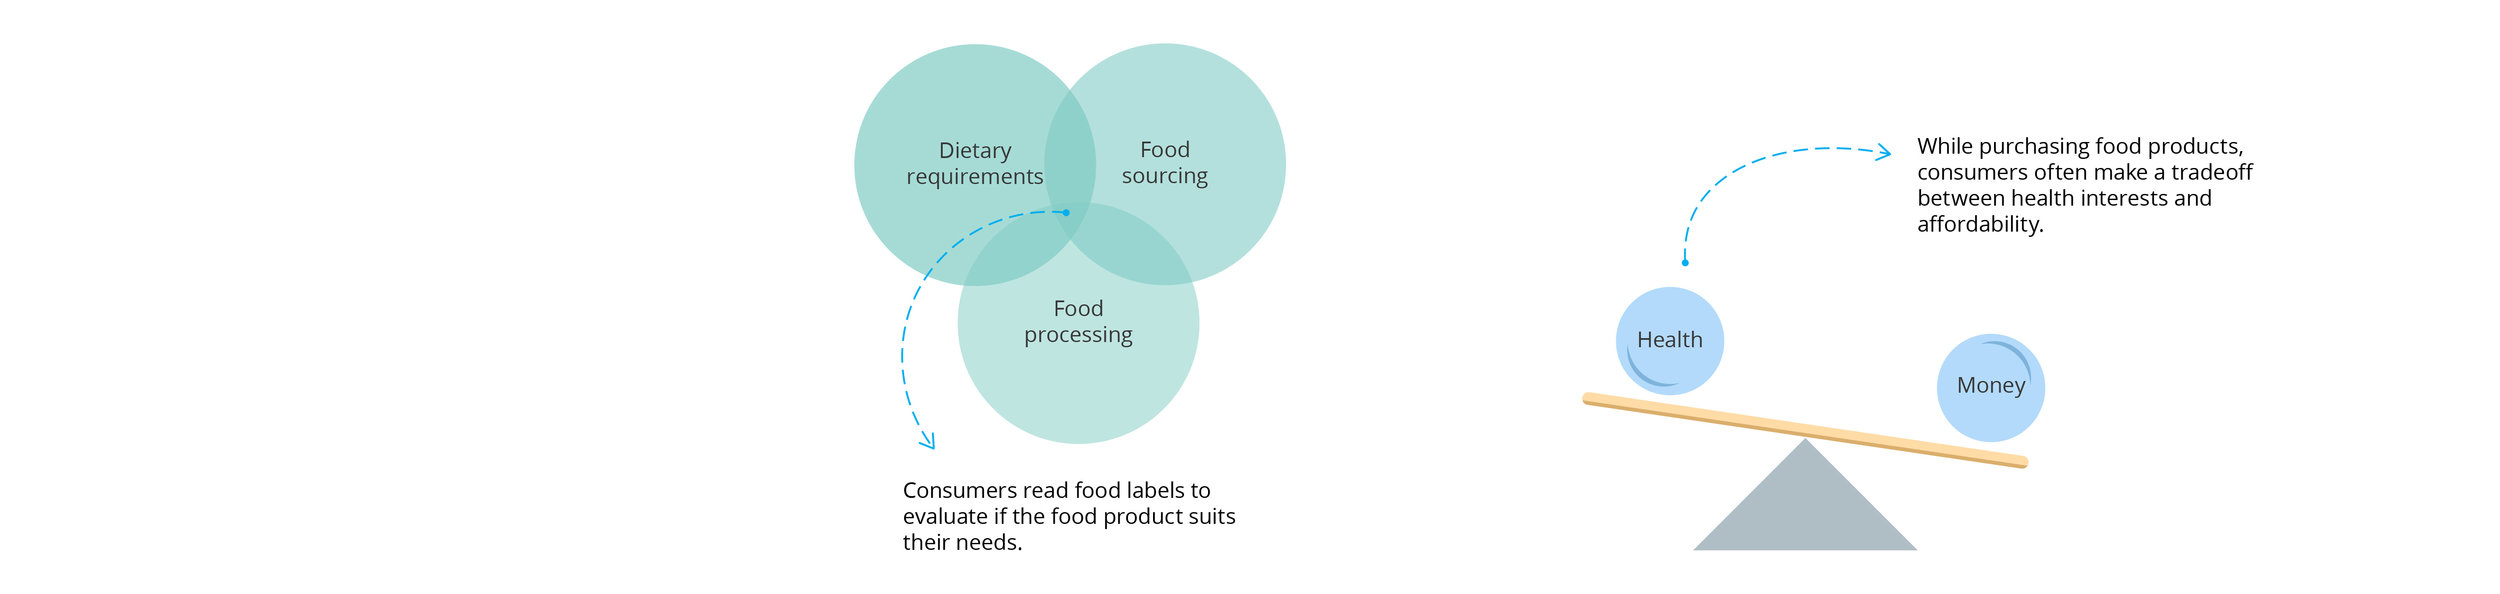 This image depicts my predisposition from secondary research. Consumers make a trade off between price of the food product and their health. They often consider their dietary needs, source of food, and location of processing before making a purchase.